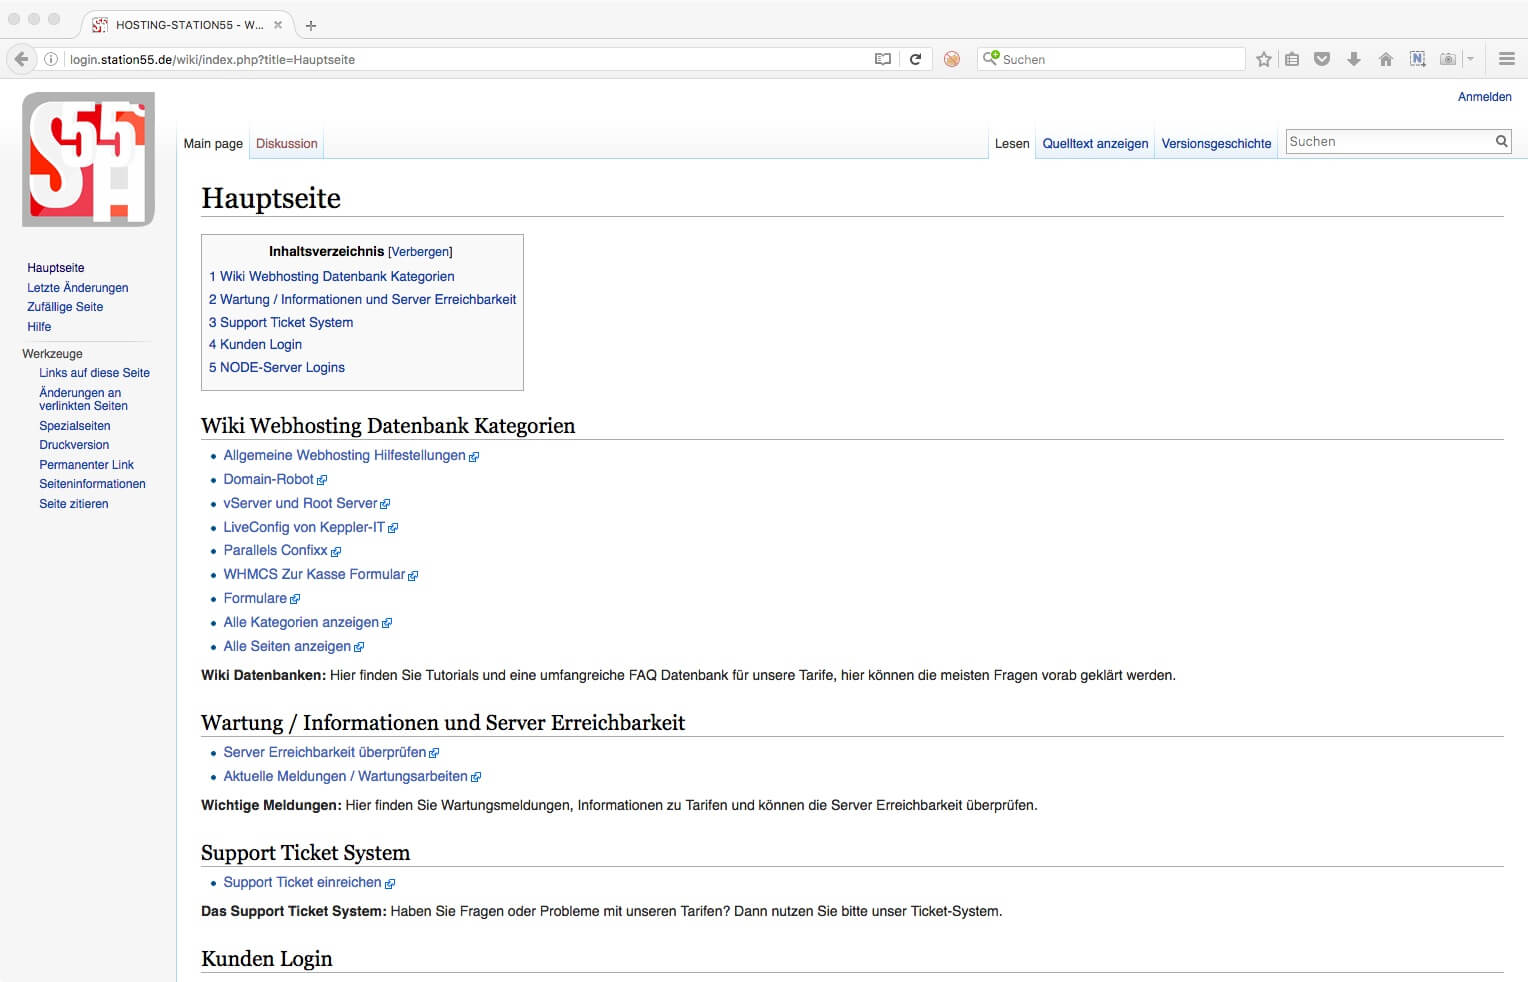 Wikipedia Webhoster FAQ Datenbank